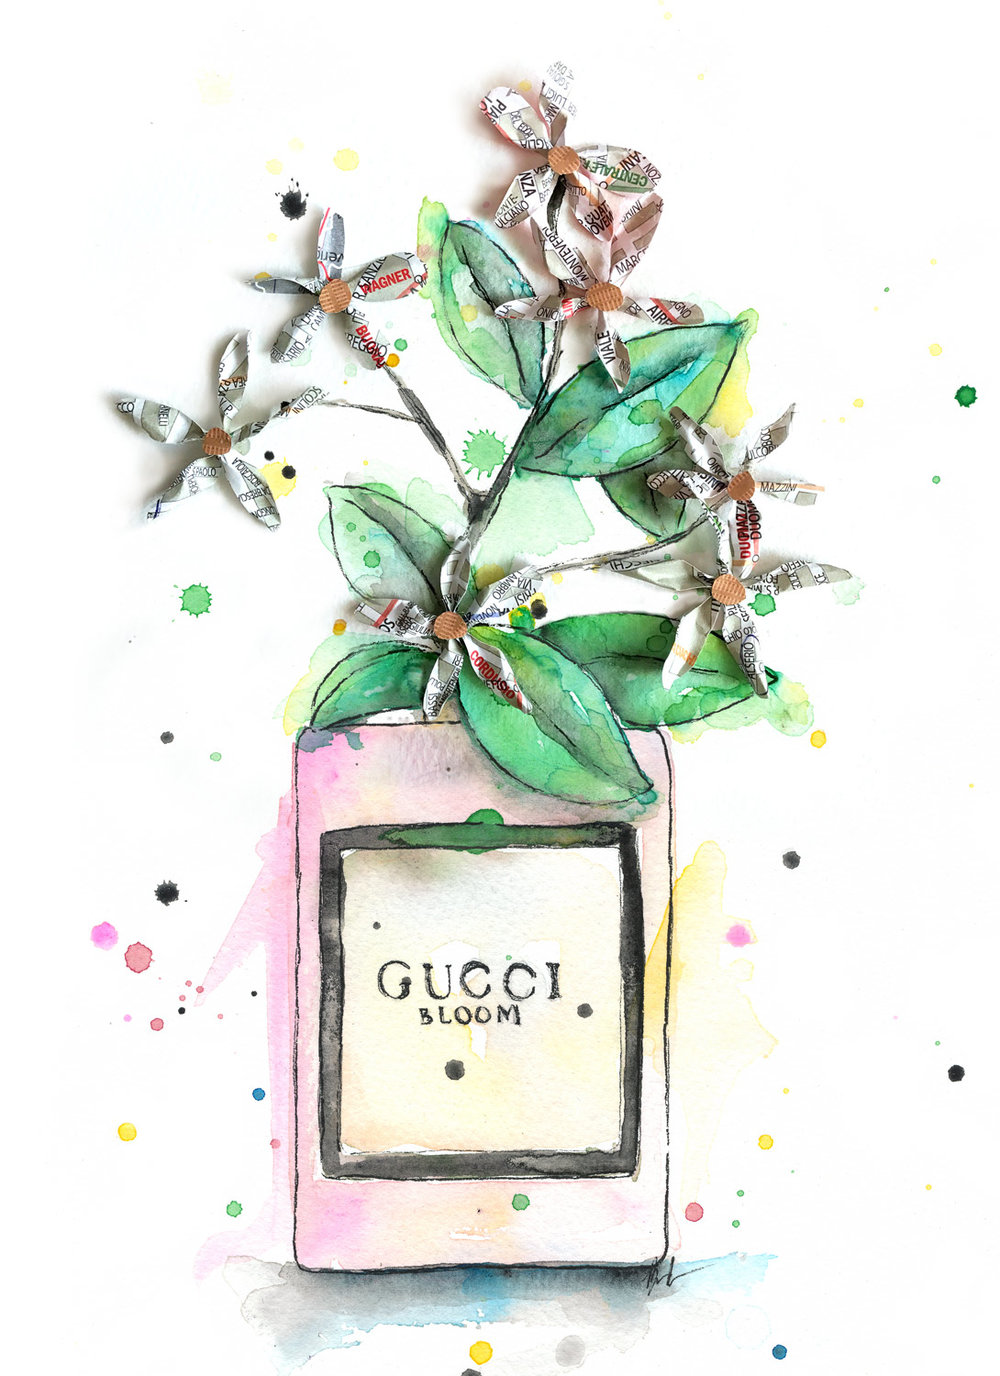 Benjamin-Edward-Gucci-Blume-Parfum-Perfume-watercolour-illustration-Papercraft-Paper-Flowers-Map-Milan-Milano.jpg